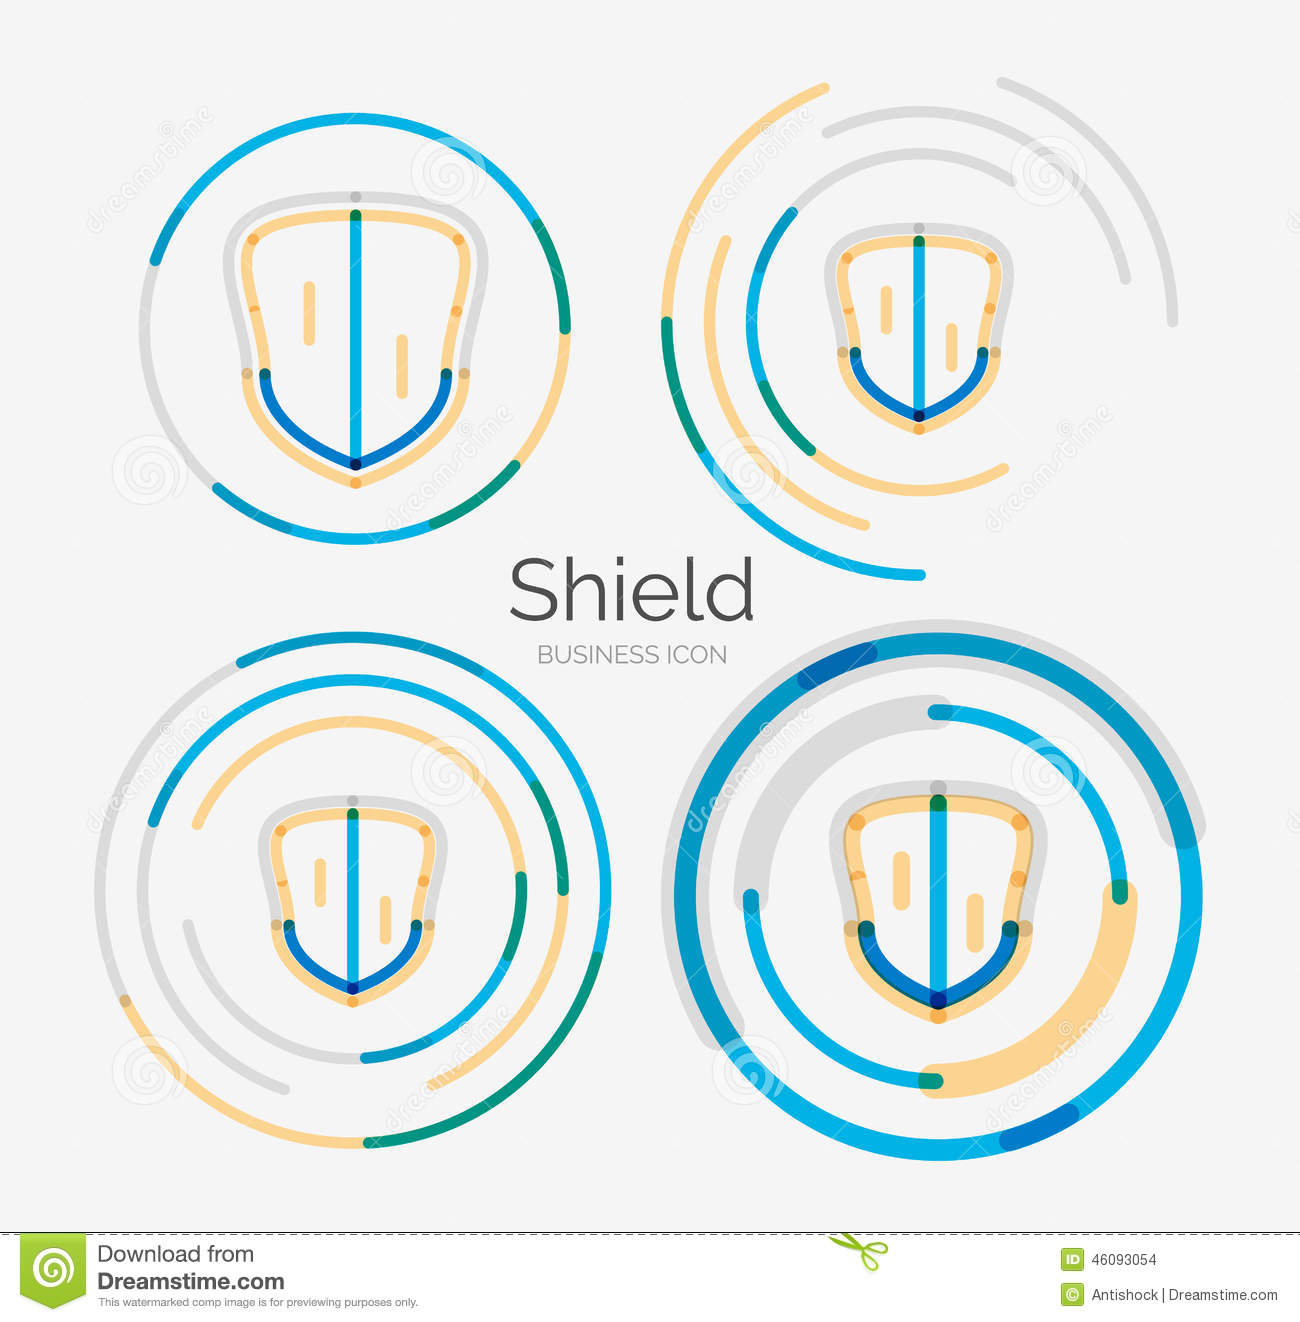 Shield design set royalty free stock photos image 5051988 - Thin Line Neat Design Logo Shield Icon Set Stock Images